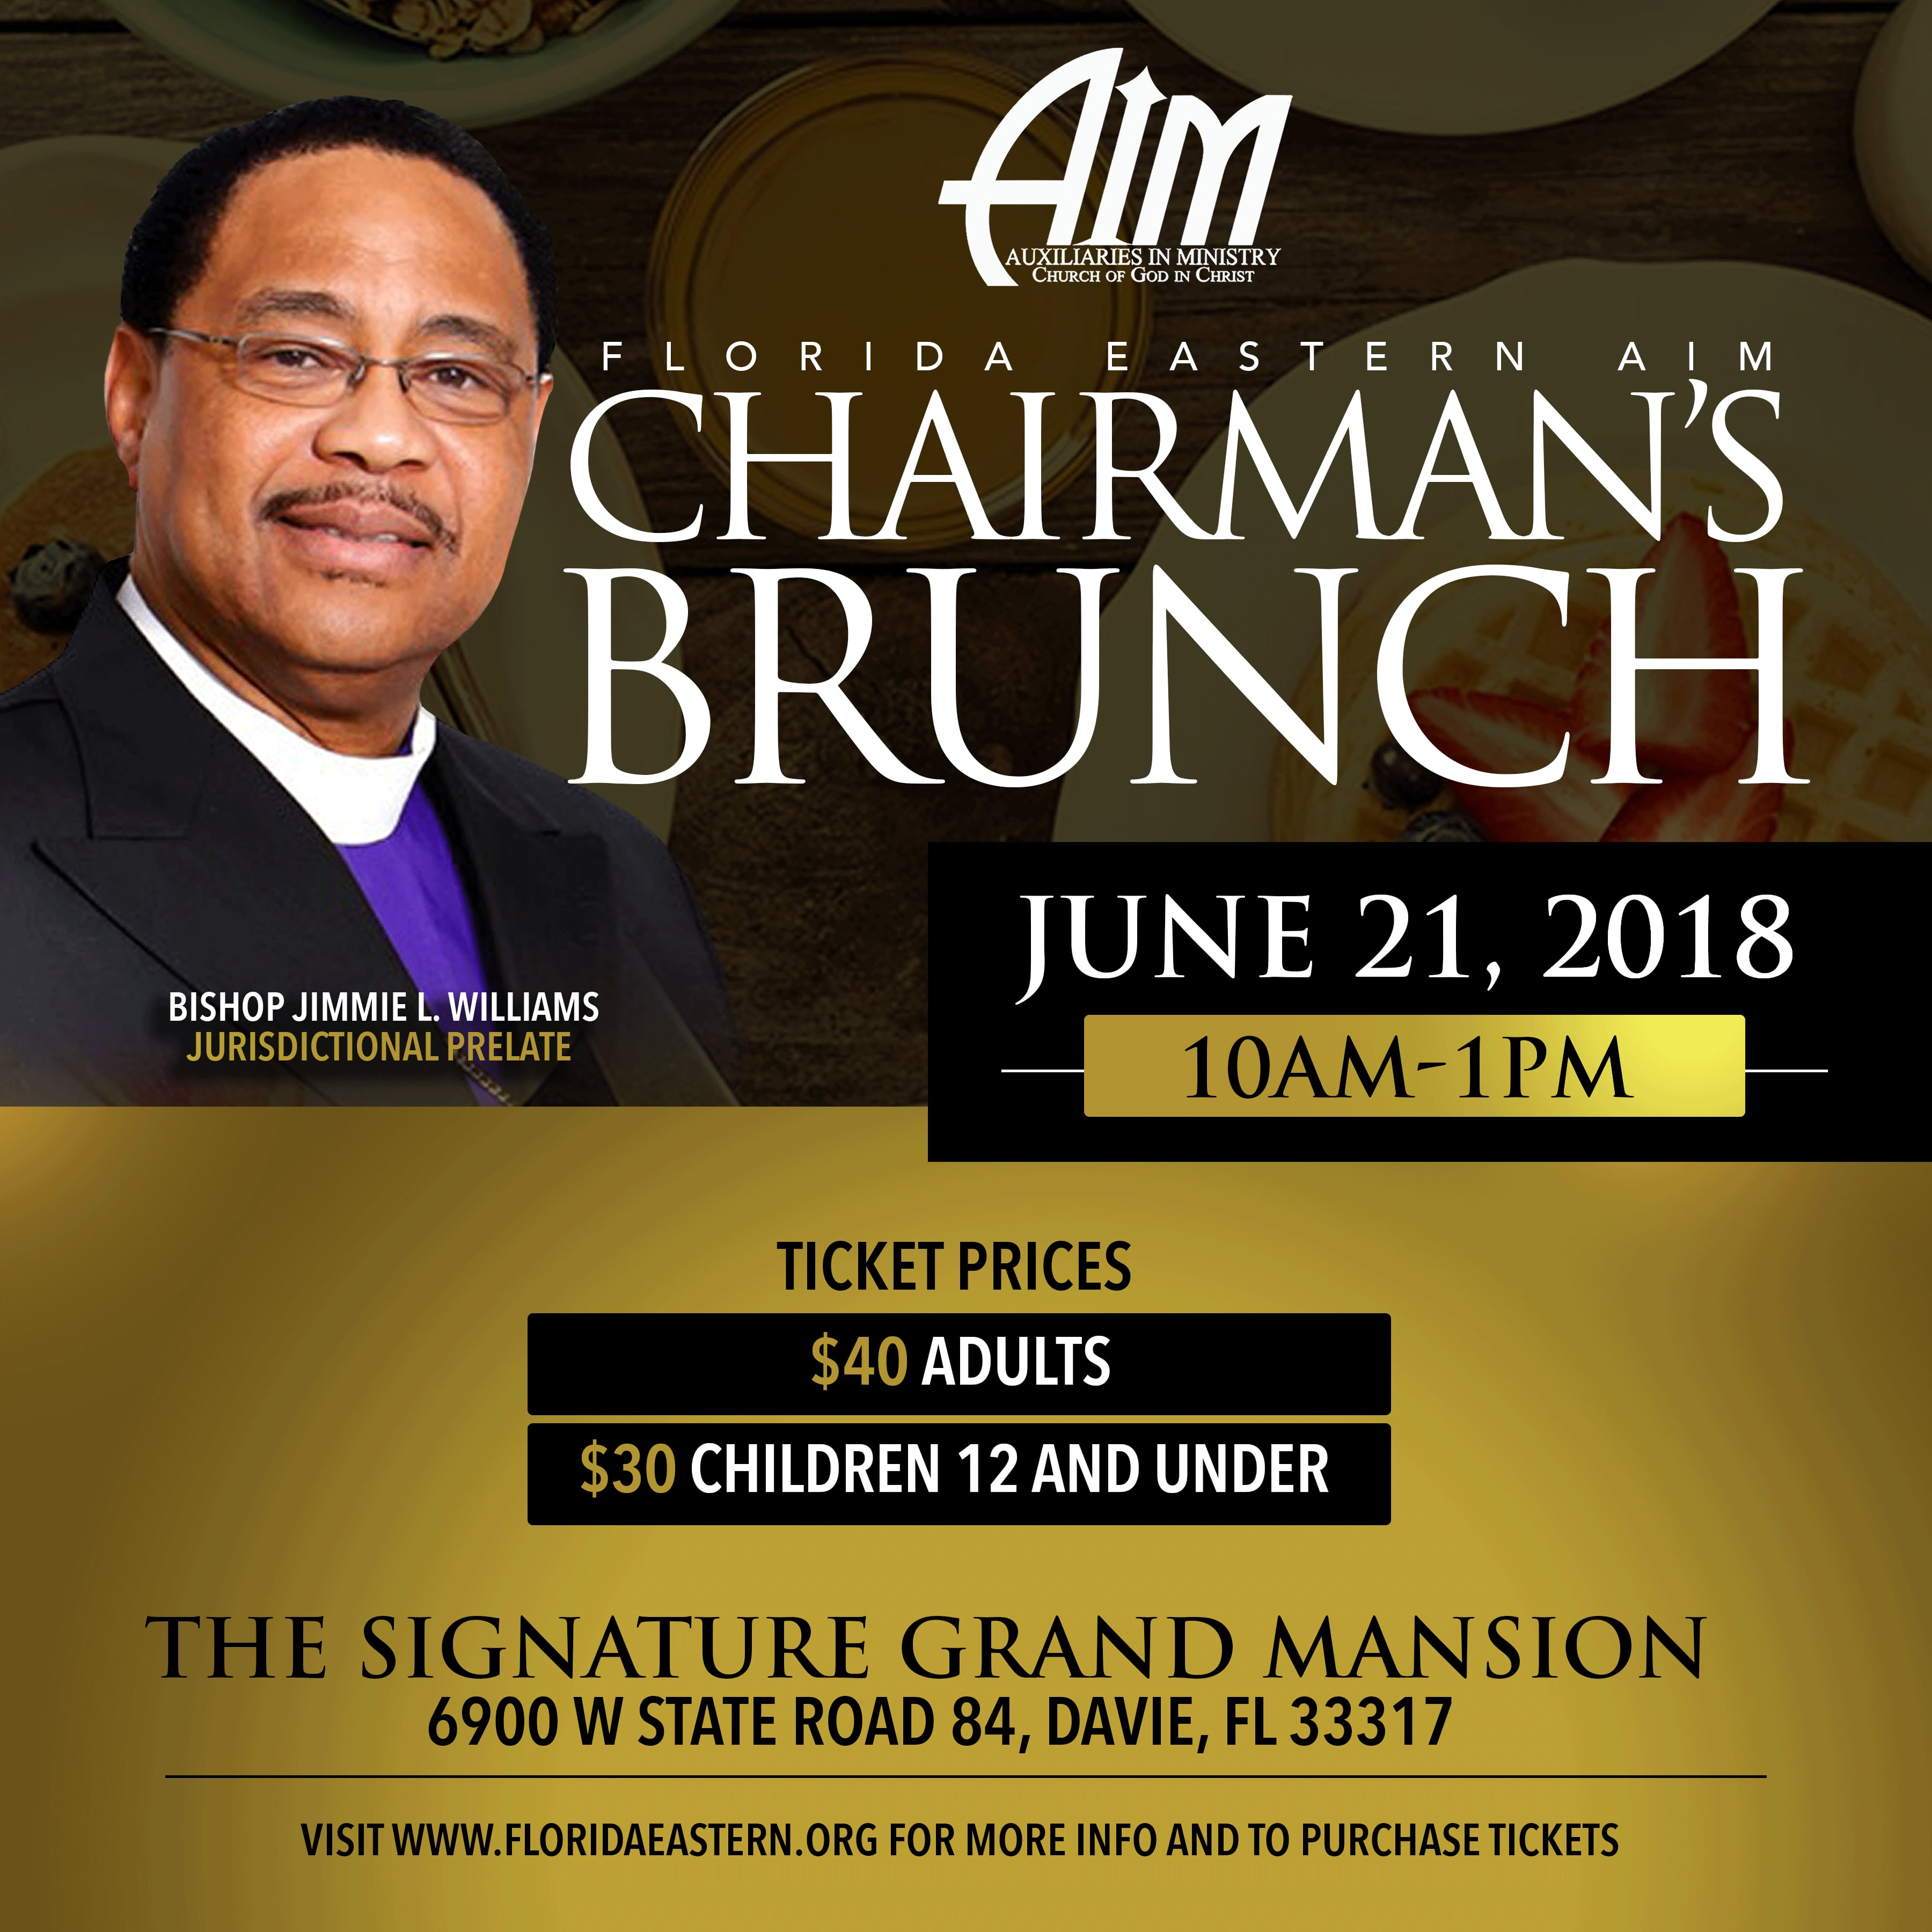 FEEJ_AIM_CHAIR_BRUNCH-1